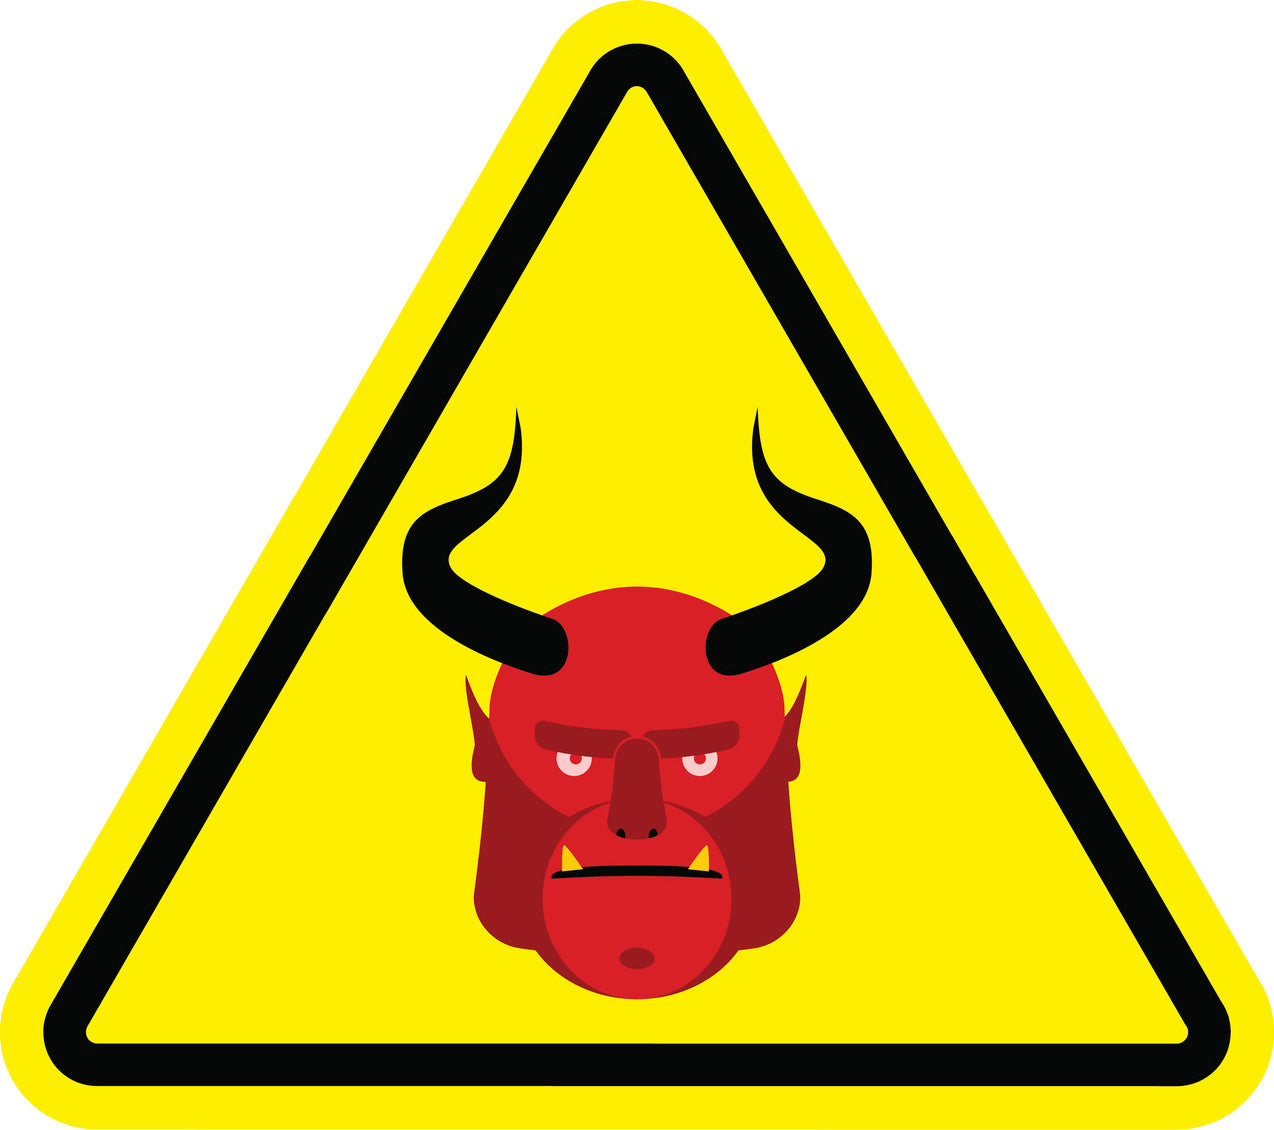 Simple Yellow Crossing Yield Triangle Sign - Demon Devil Vinyl Decal Sticker